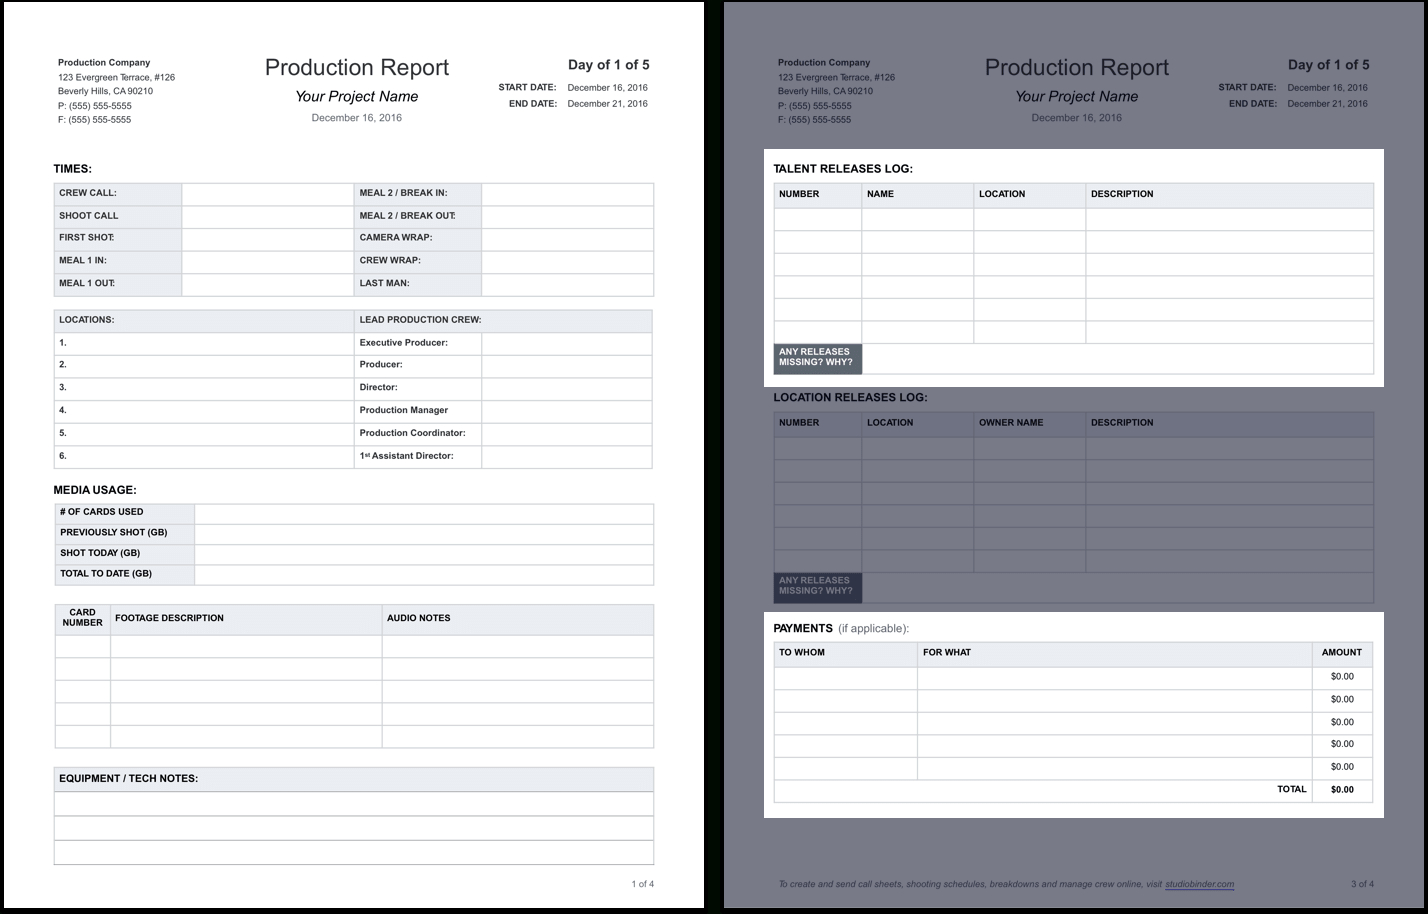 Free Spreadsheet For Craft Business Pertaining To The Daily Production Report, Explained With Free Template